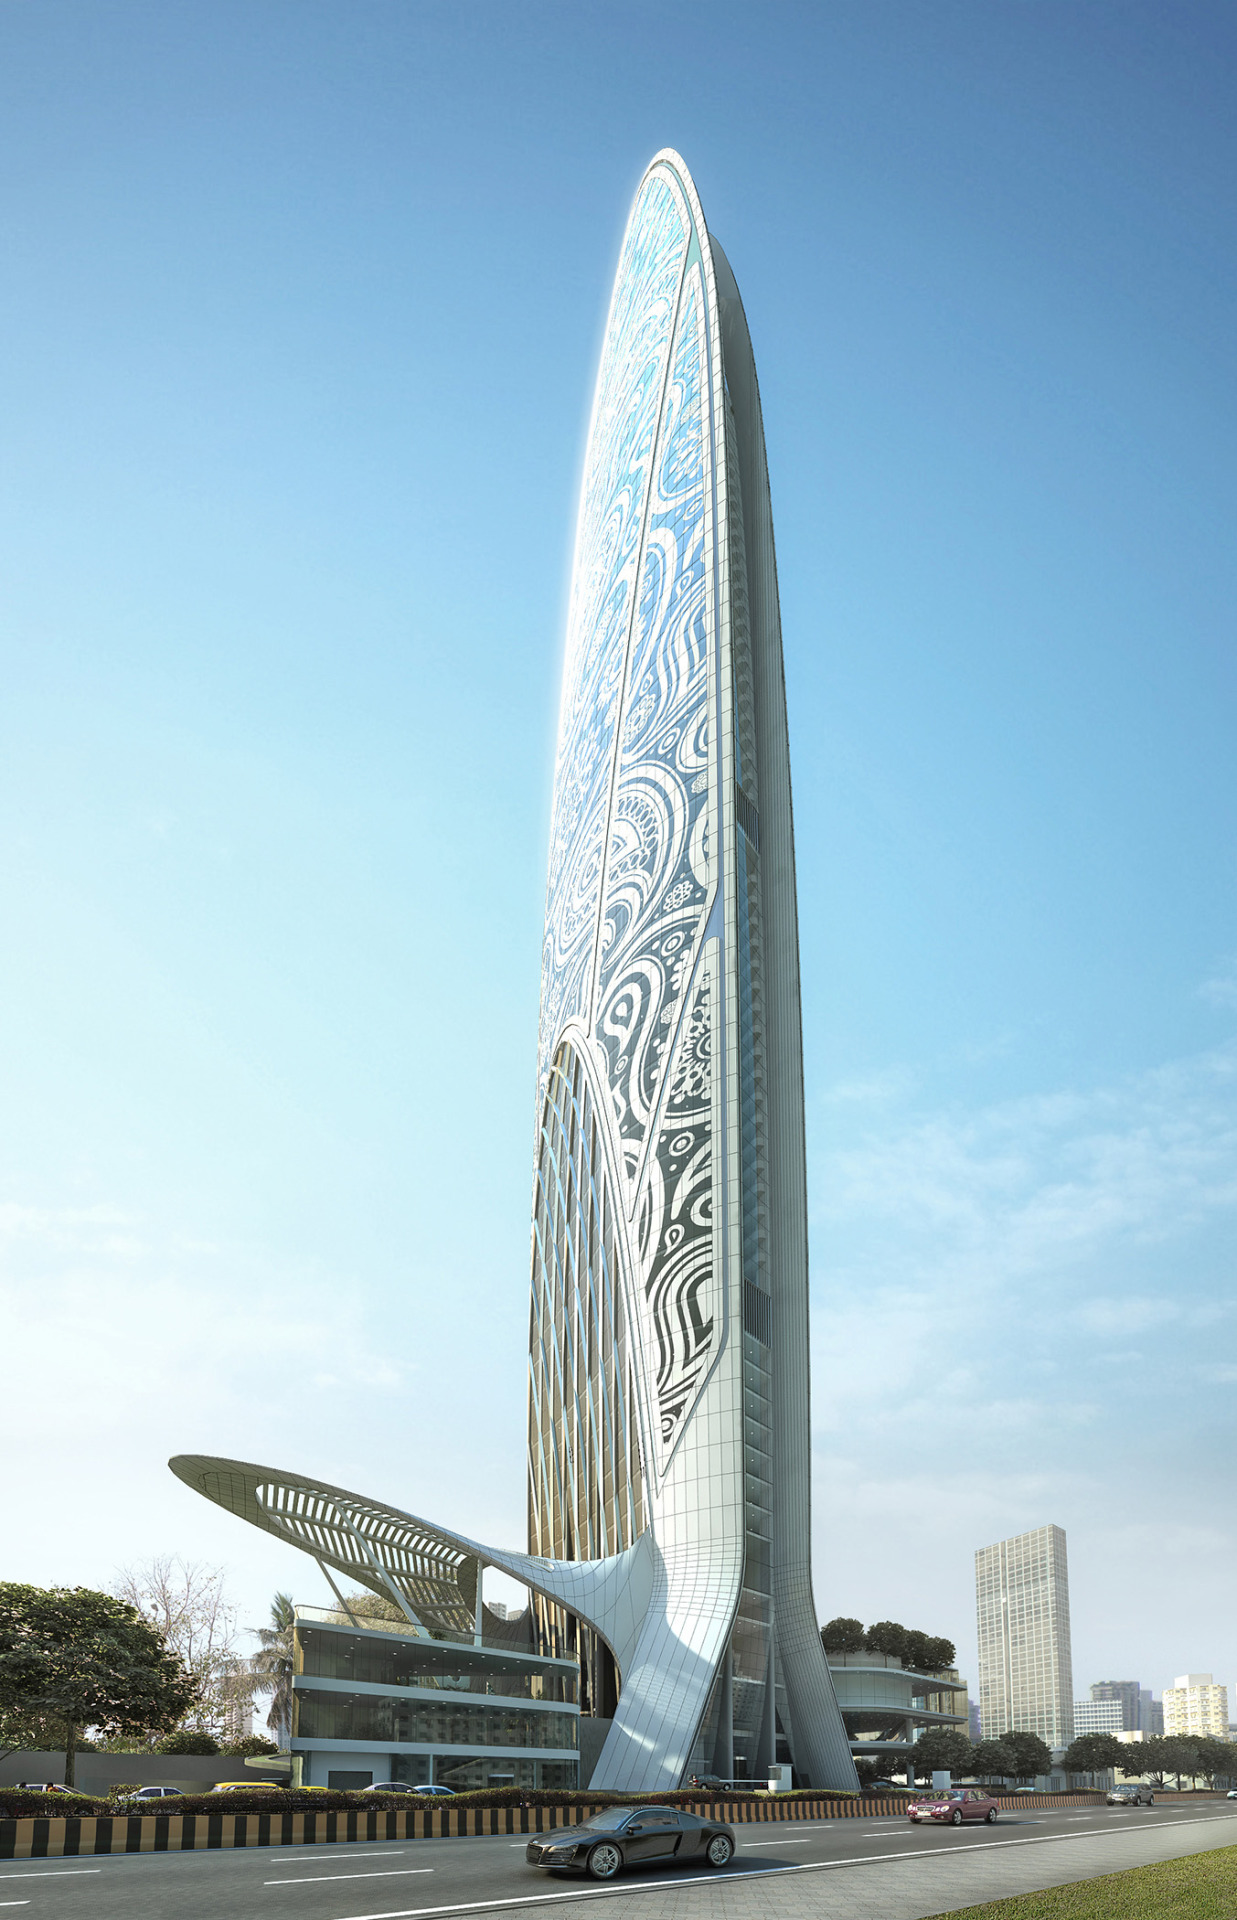 #ARCHITECTURE #RENDERINGS Mumbai, India | Namaste Tower | Atkins Mastering Autodesk Viz Render 2006: A Resource For Autodesk Architecural Desktop Users 9 new from $47.96 16 used from $8.72 SOURCE | 12.05.2013 | 14.19 High resolution renderings (showcase) http://www.skyscrapercity.com/showthread.php?t=1141539